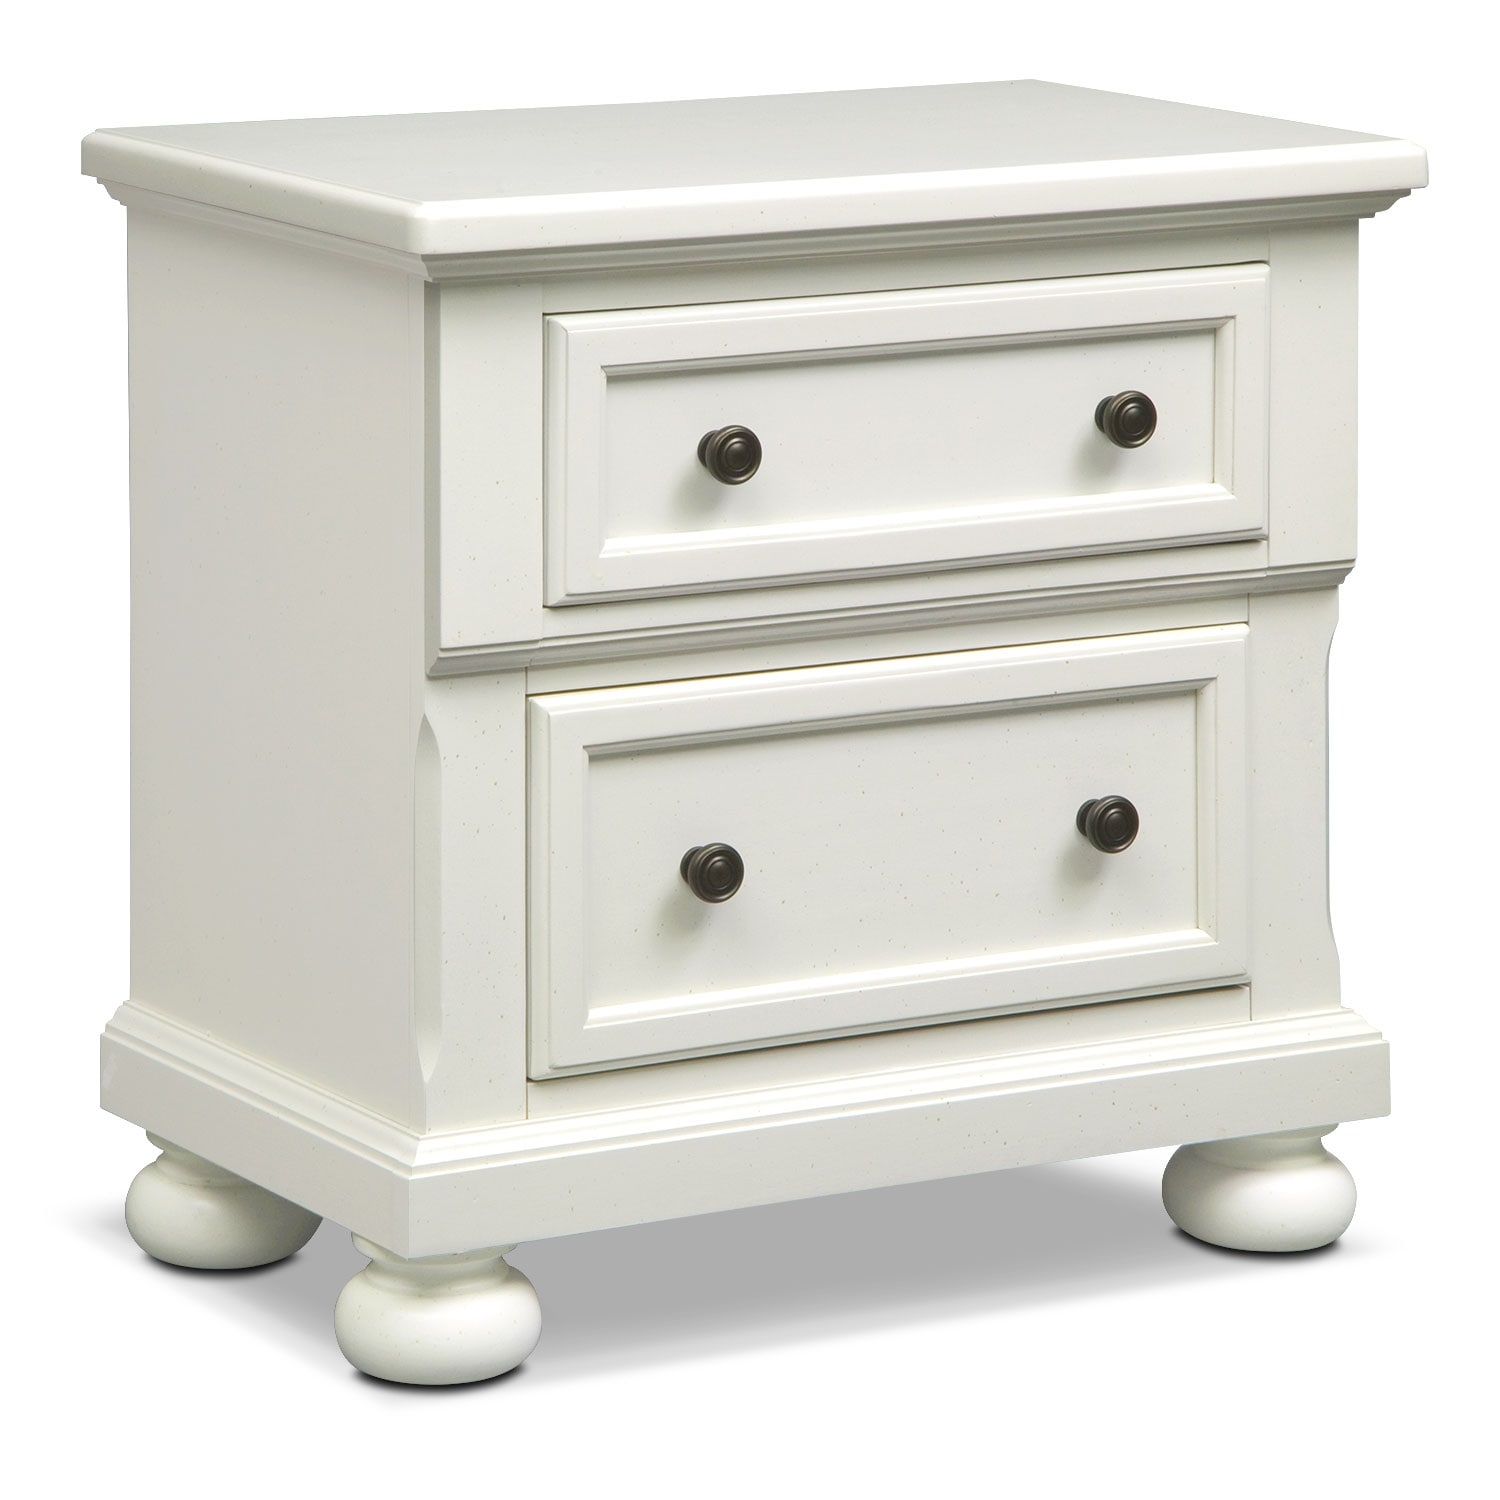 Bedroom Furniture - Hanover White Panel Nightstand